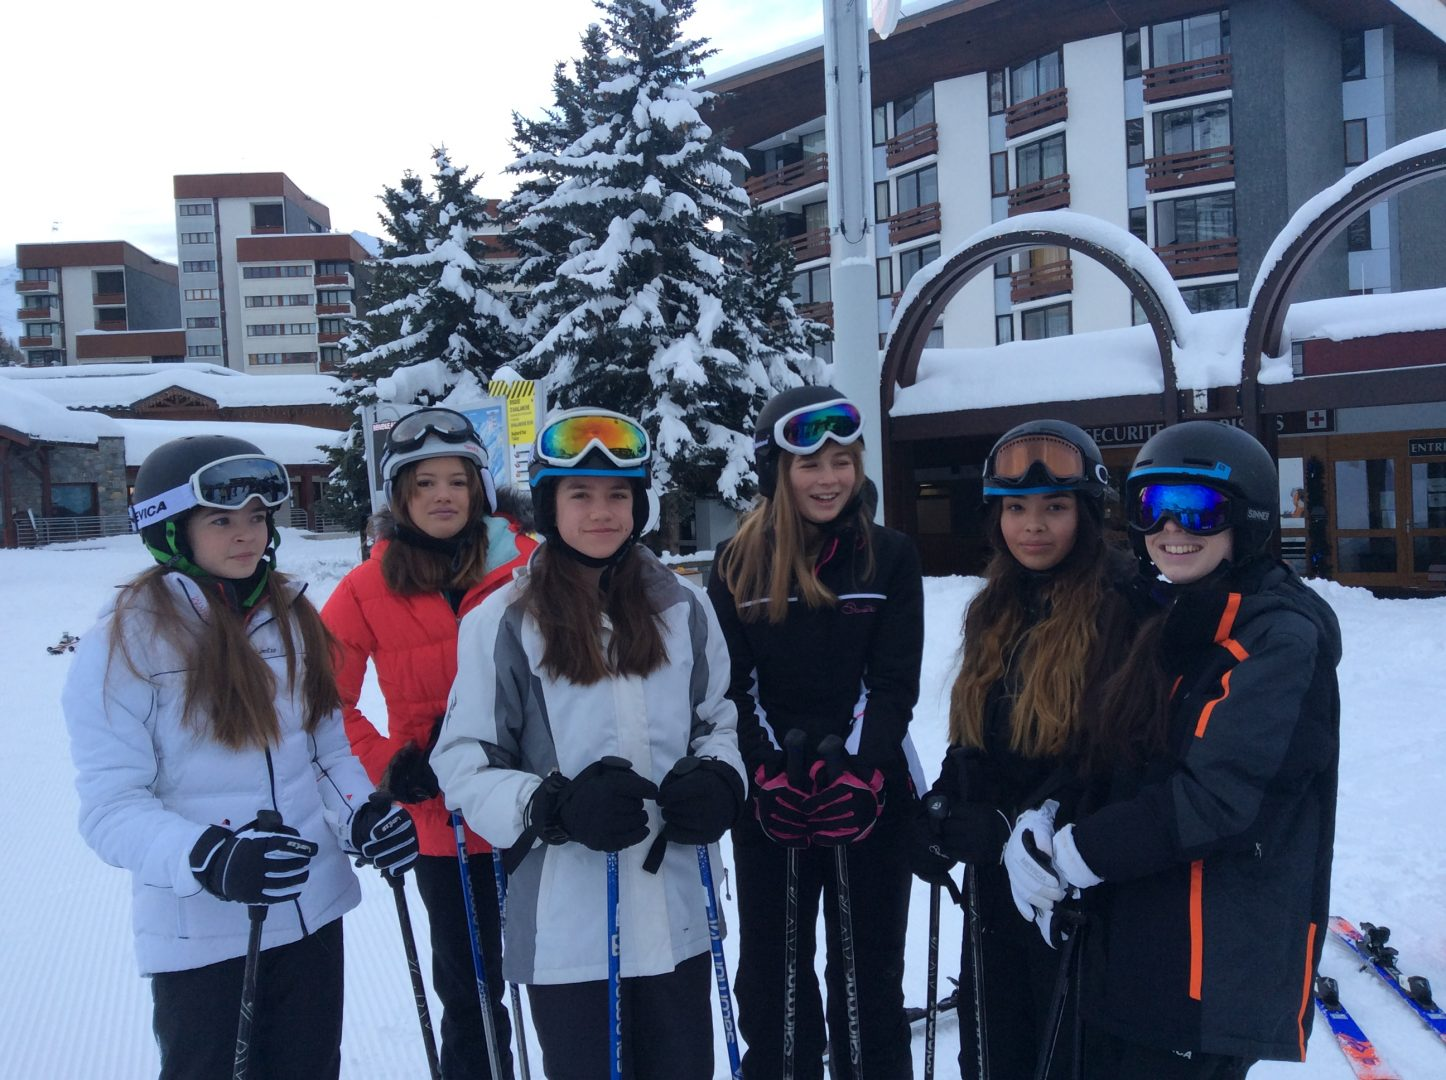 CHS girls pose for the camera while on school ski trip